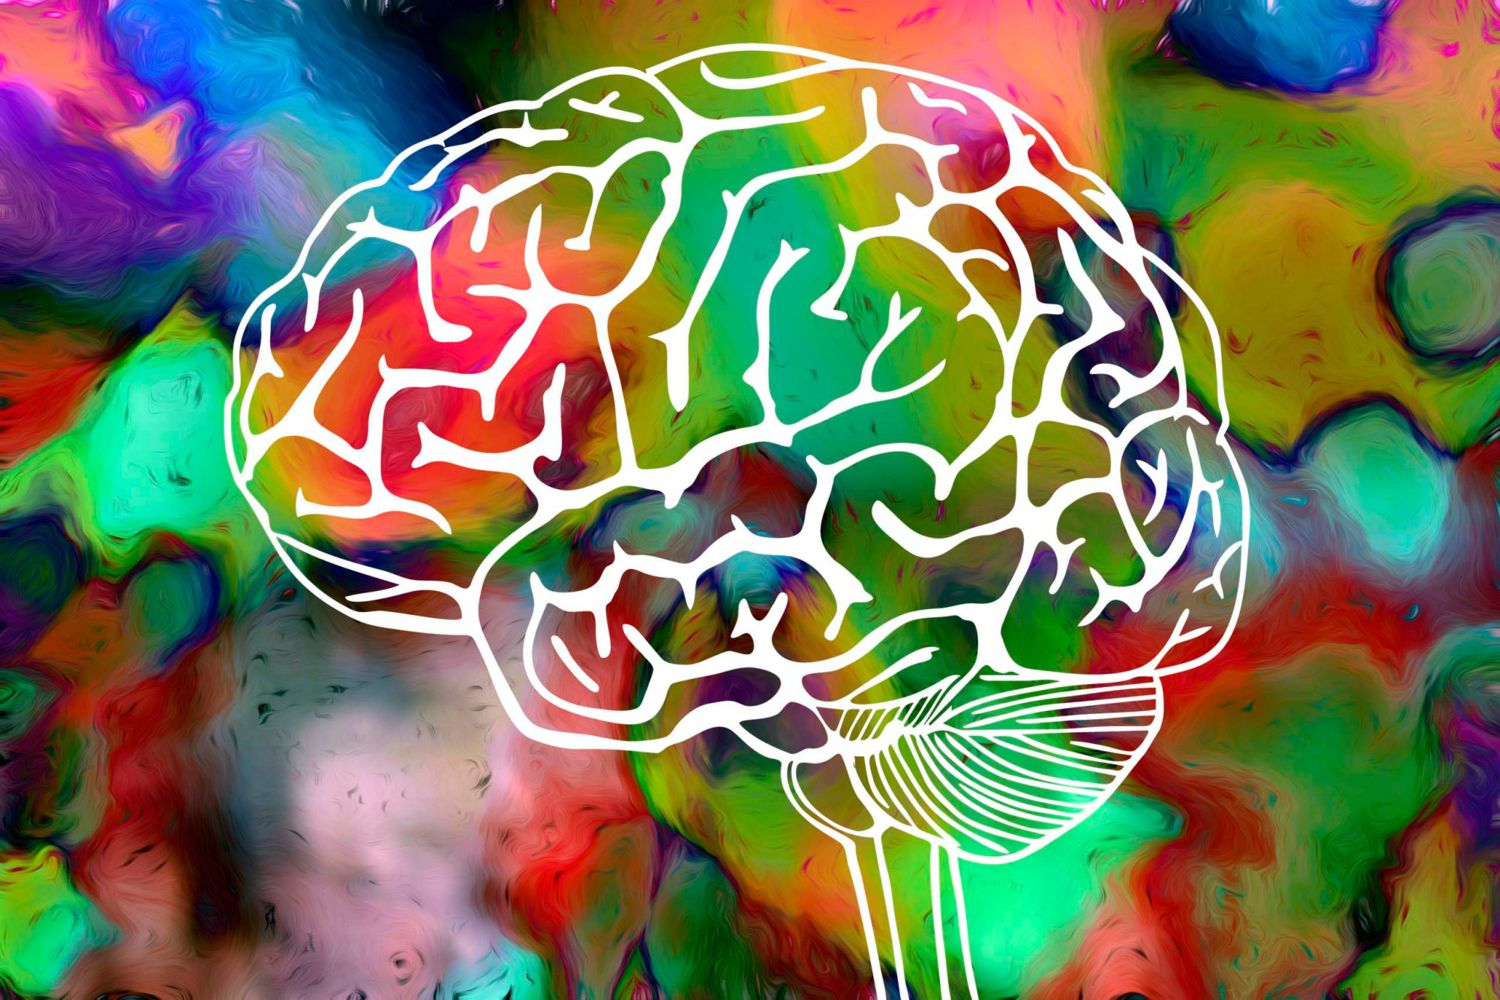 Hallucinogen Use In Canada: The Facts - Drug Facts